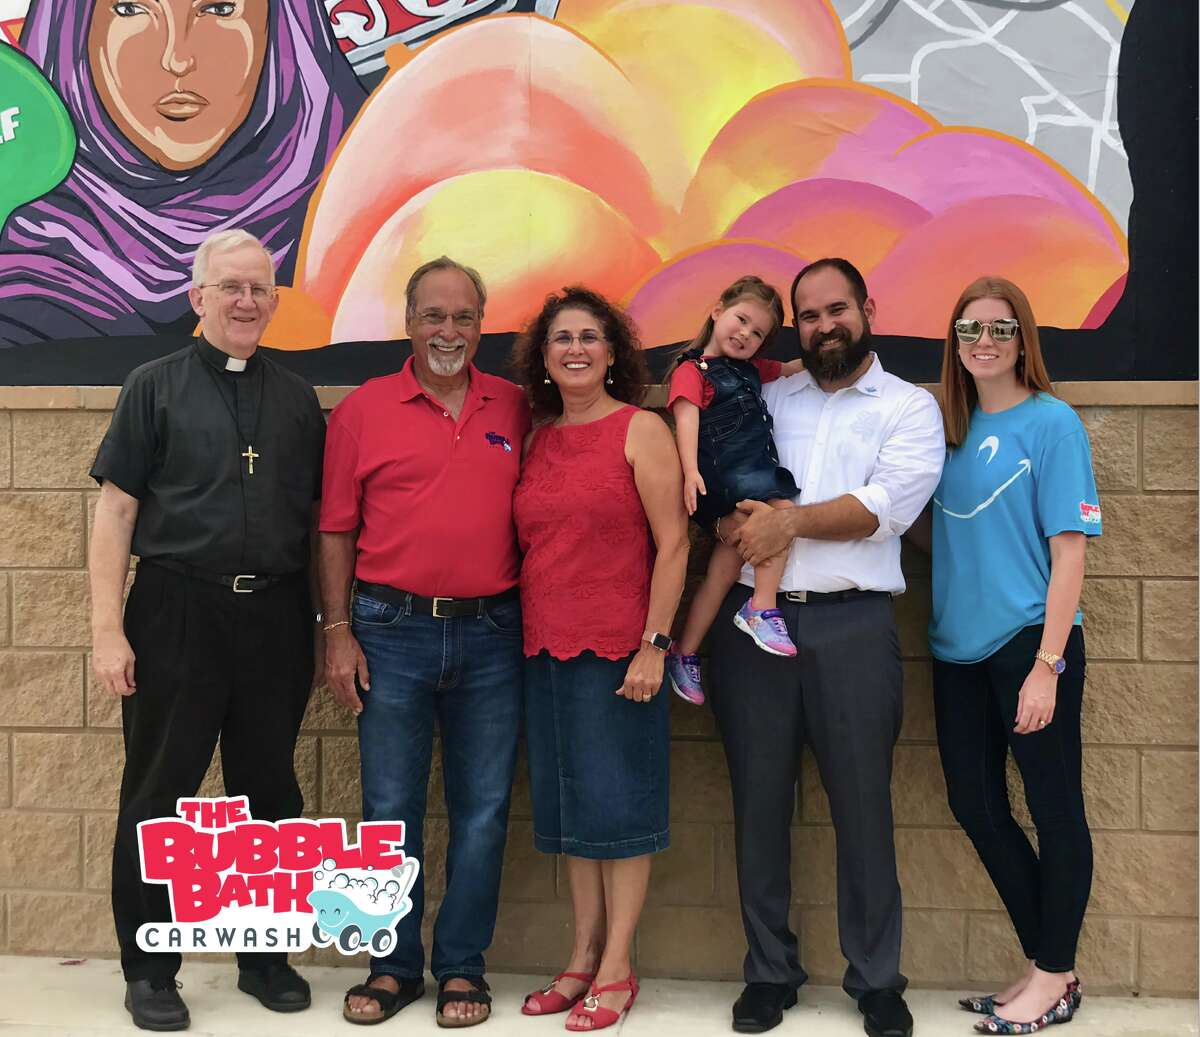 Family-owned and operated, The Bubble Bath Car Wash keeps winning the hearts of San Antonians.